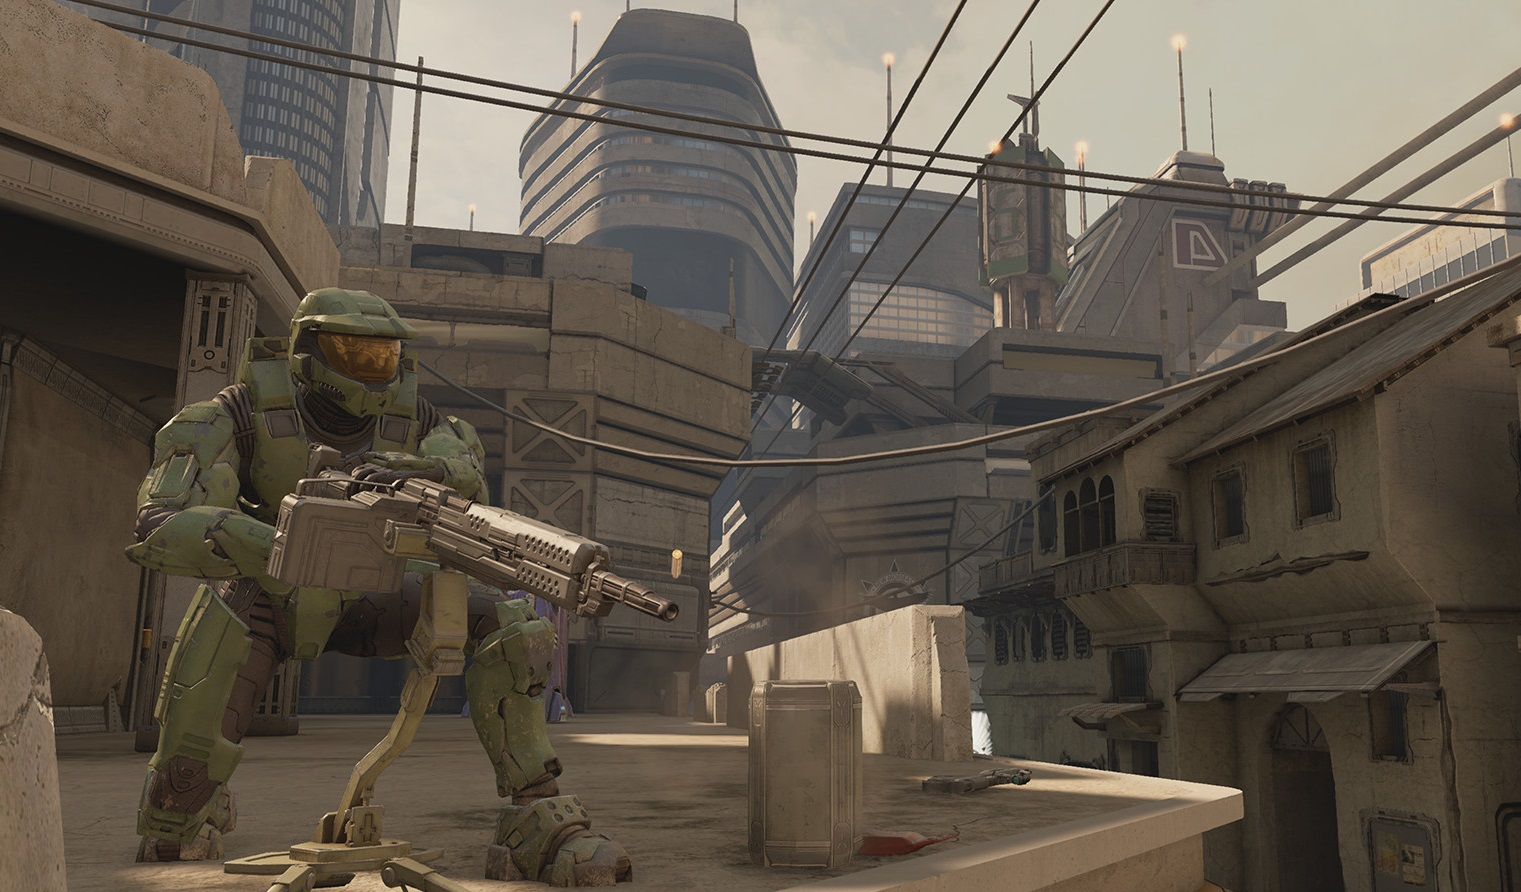 Halo: The Master Chief Collection and Reach testing could